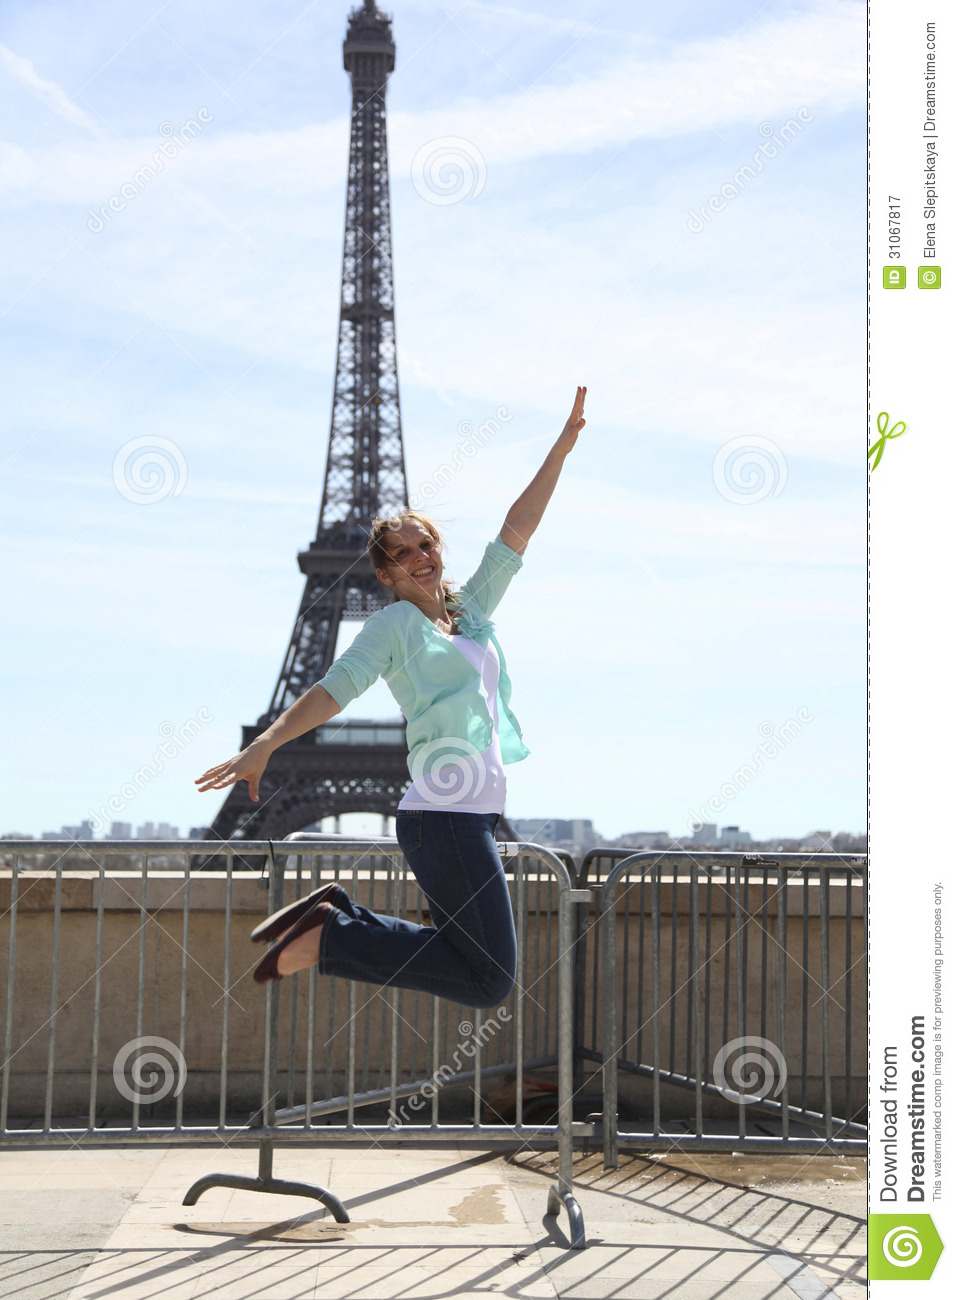 Happy young woman jumping against eiffel tower royalty free stock